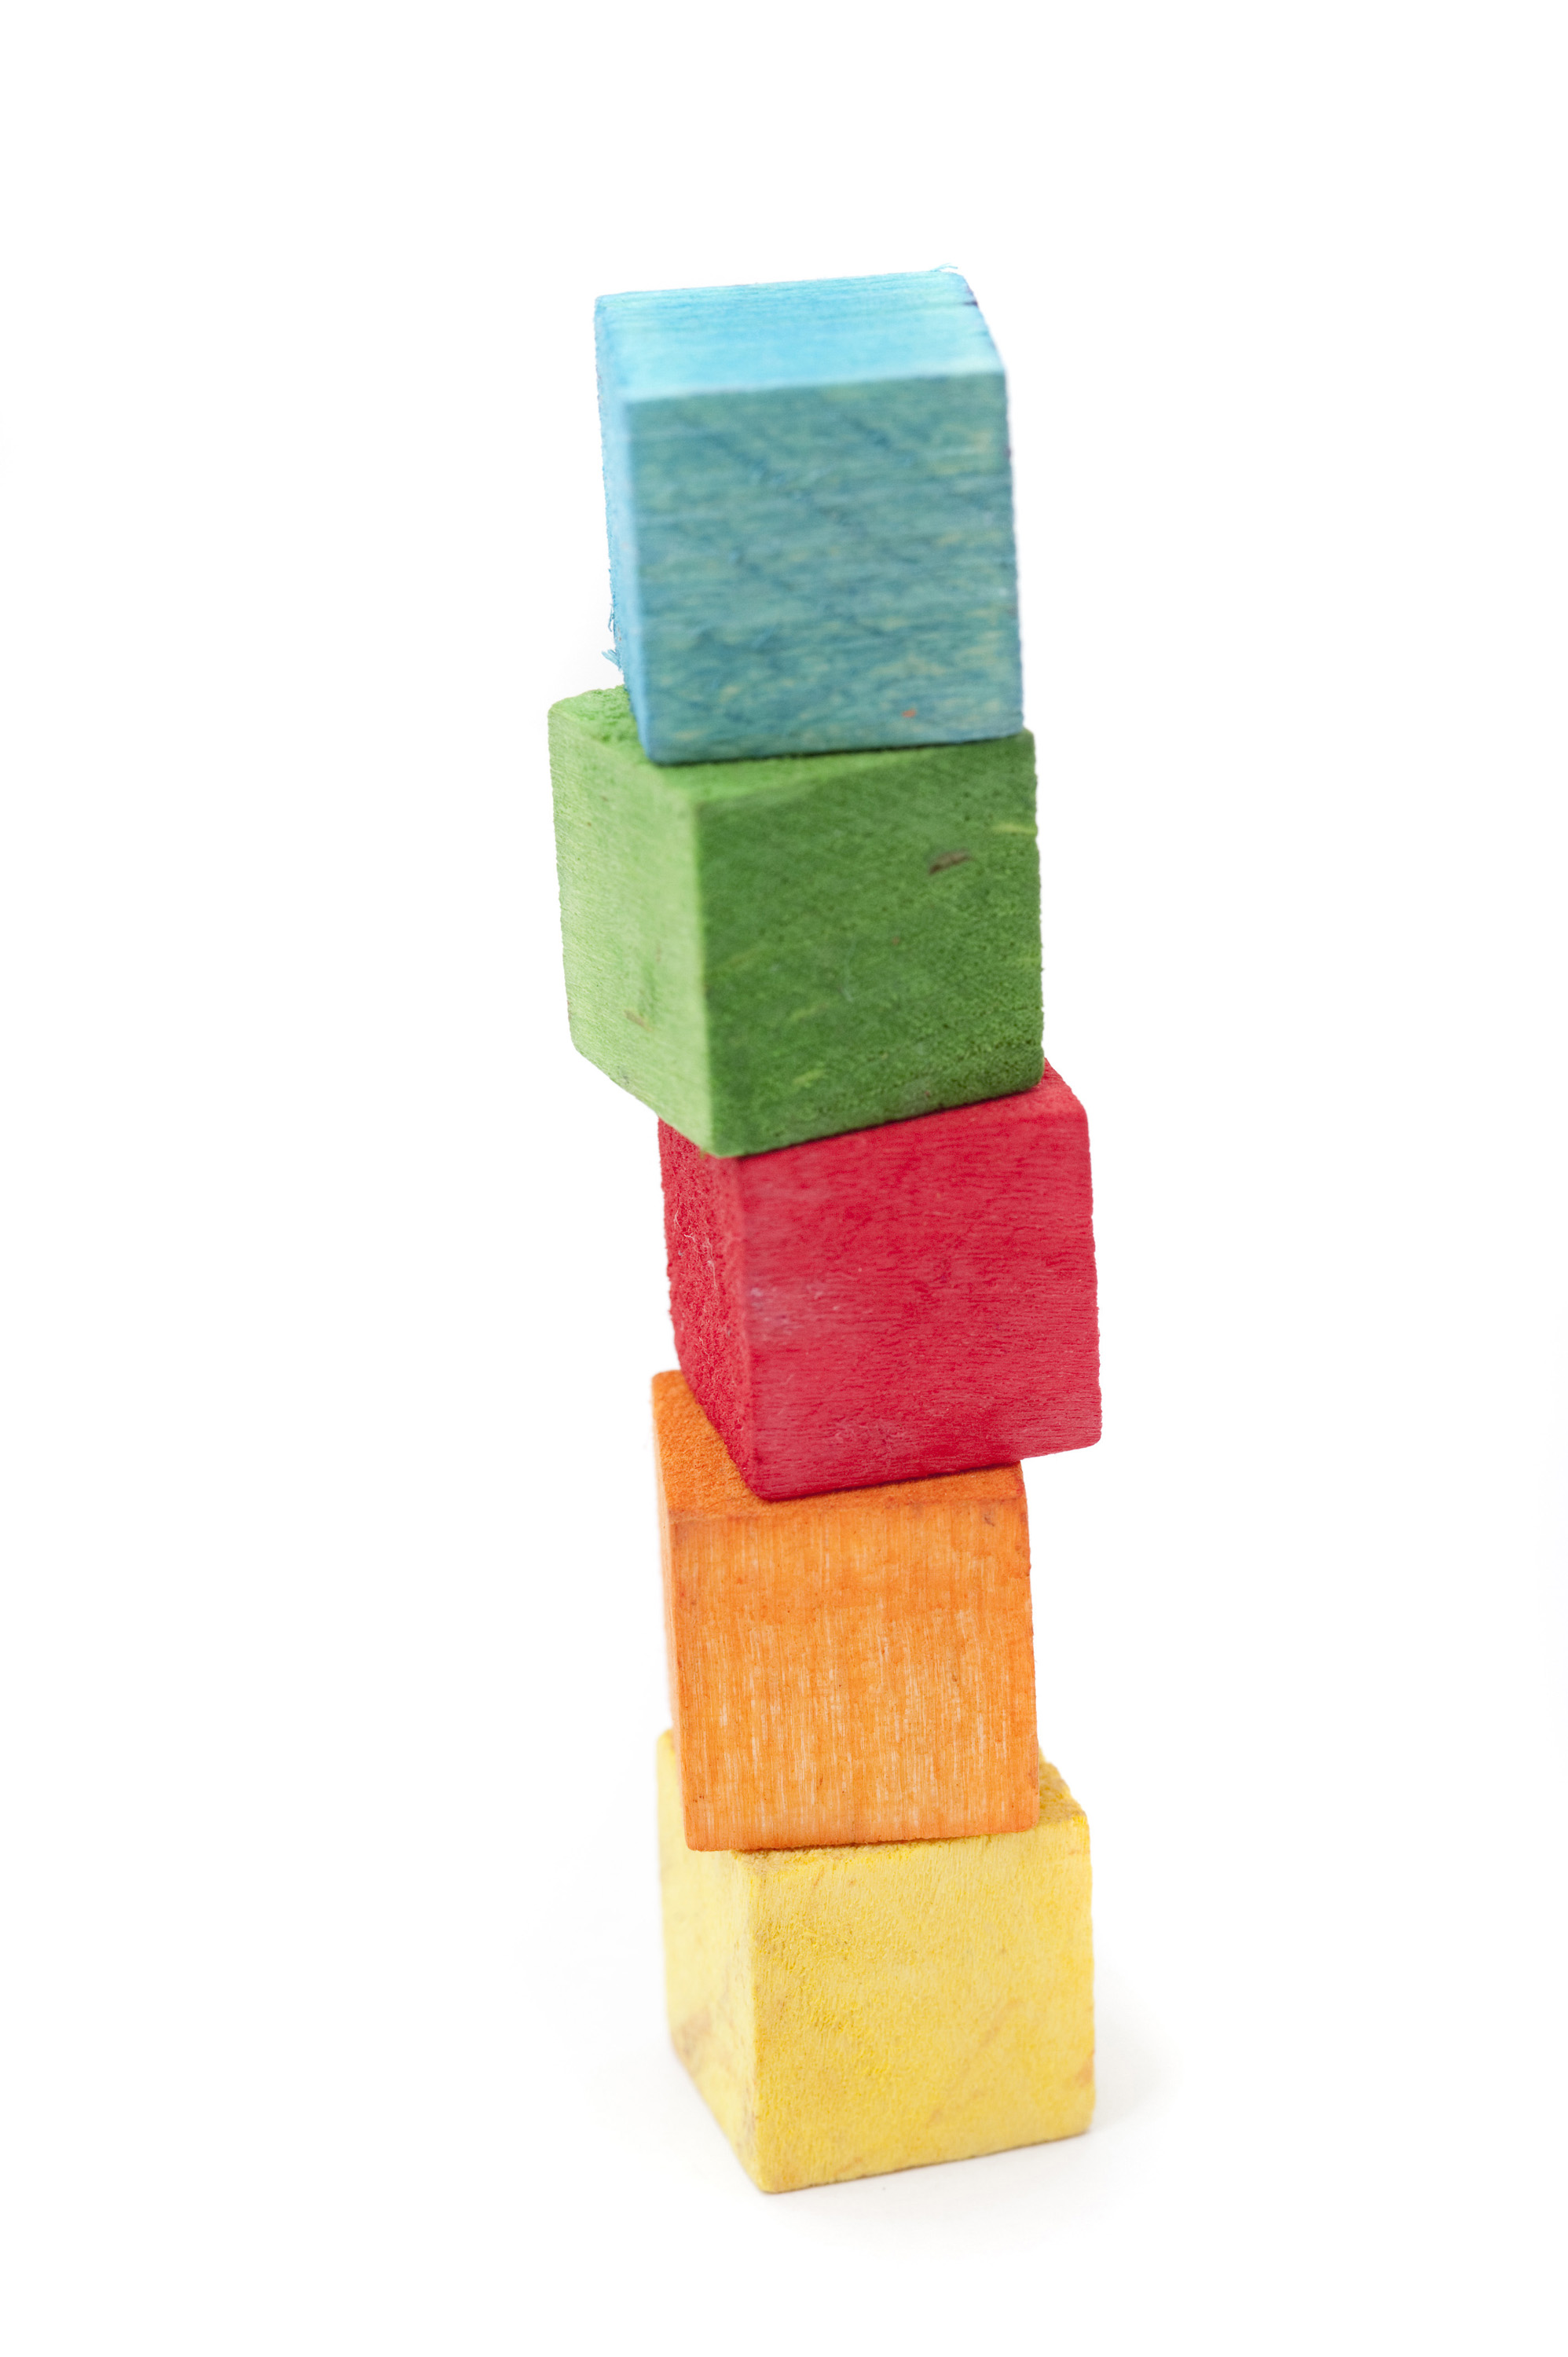 Block Clipart Towers Block Towers Transparent Free For